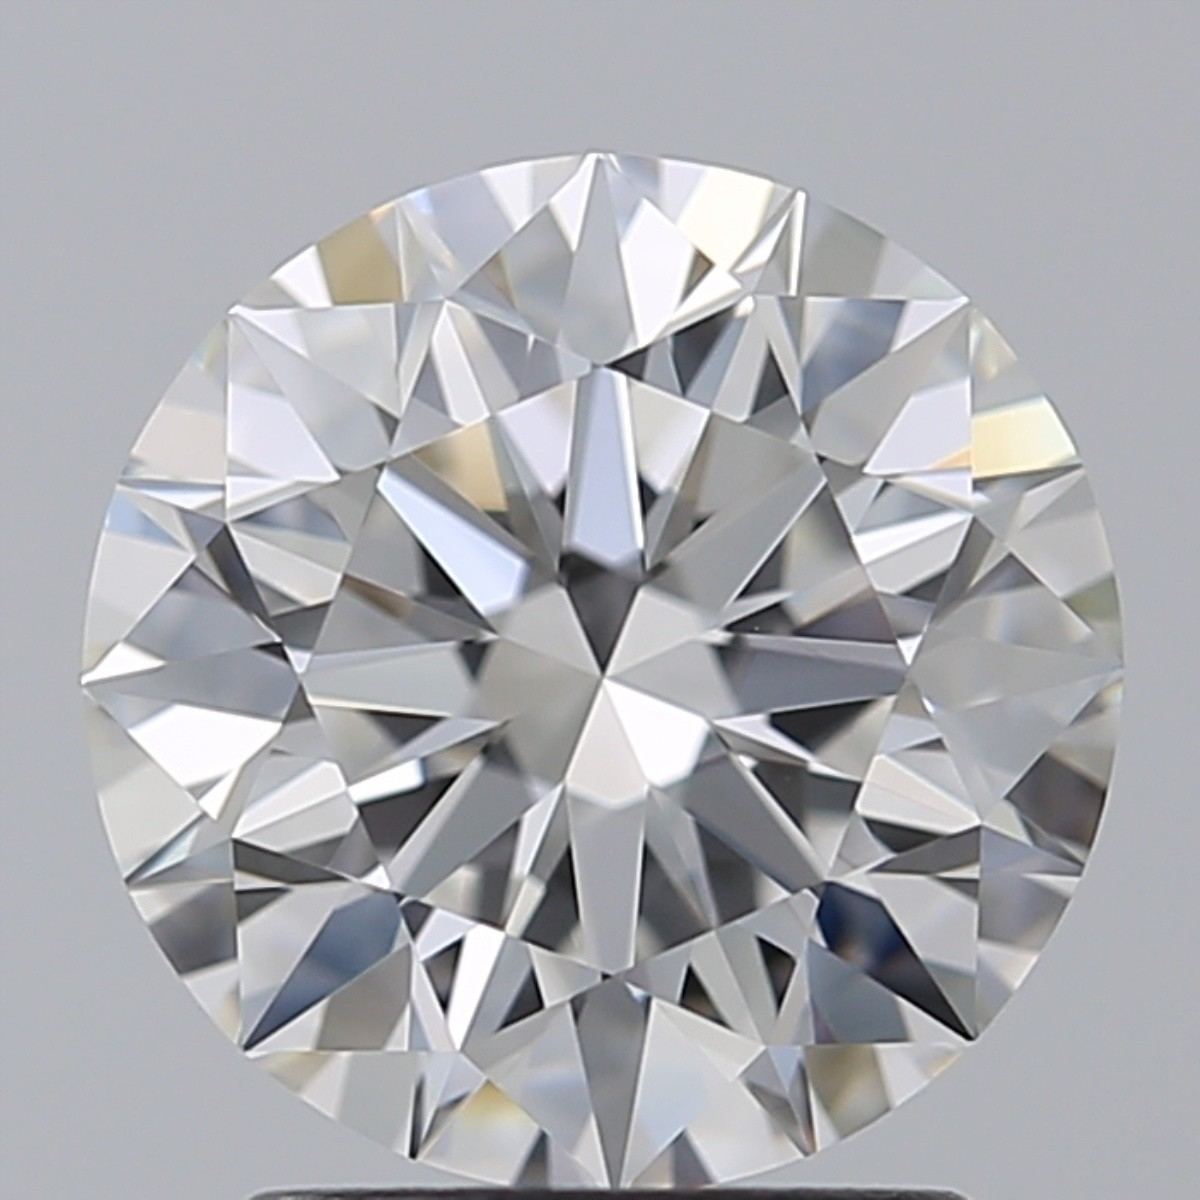 2.09 Carat Round Brilliant Diamond (F/VVS2)